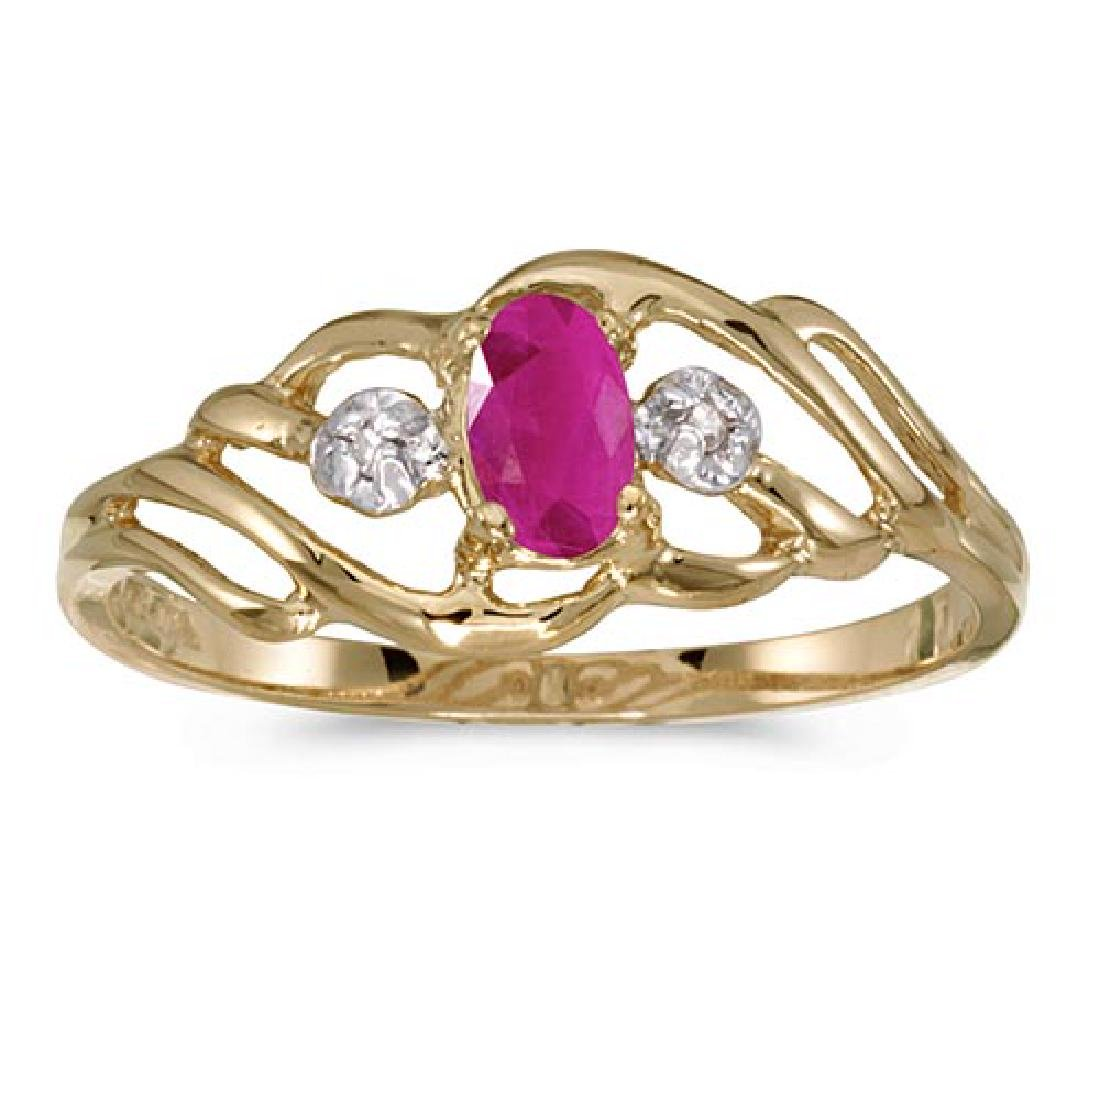 Certified 14k Yellow Gold Oval Ruby And Diamond Ring 0.